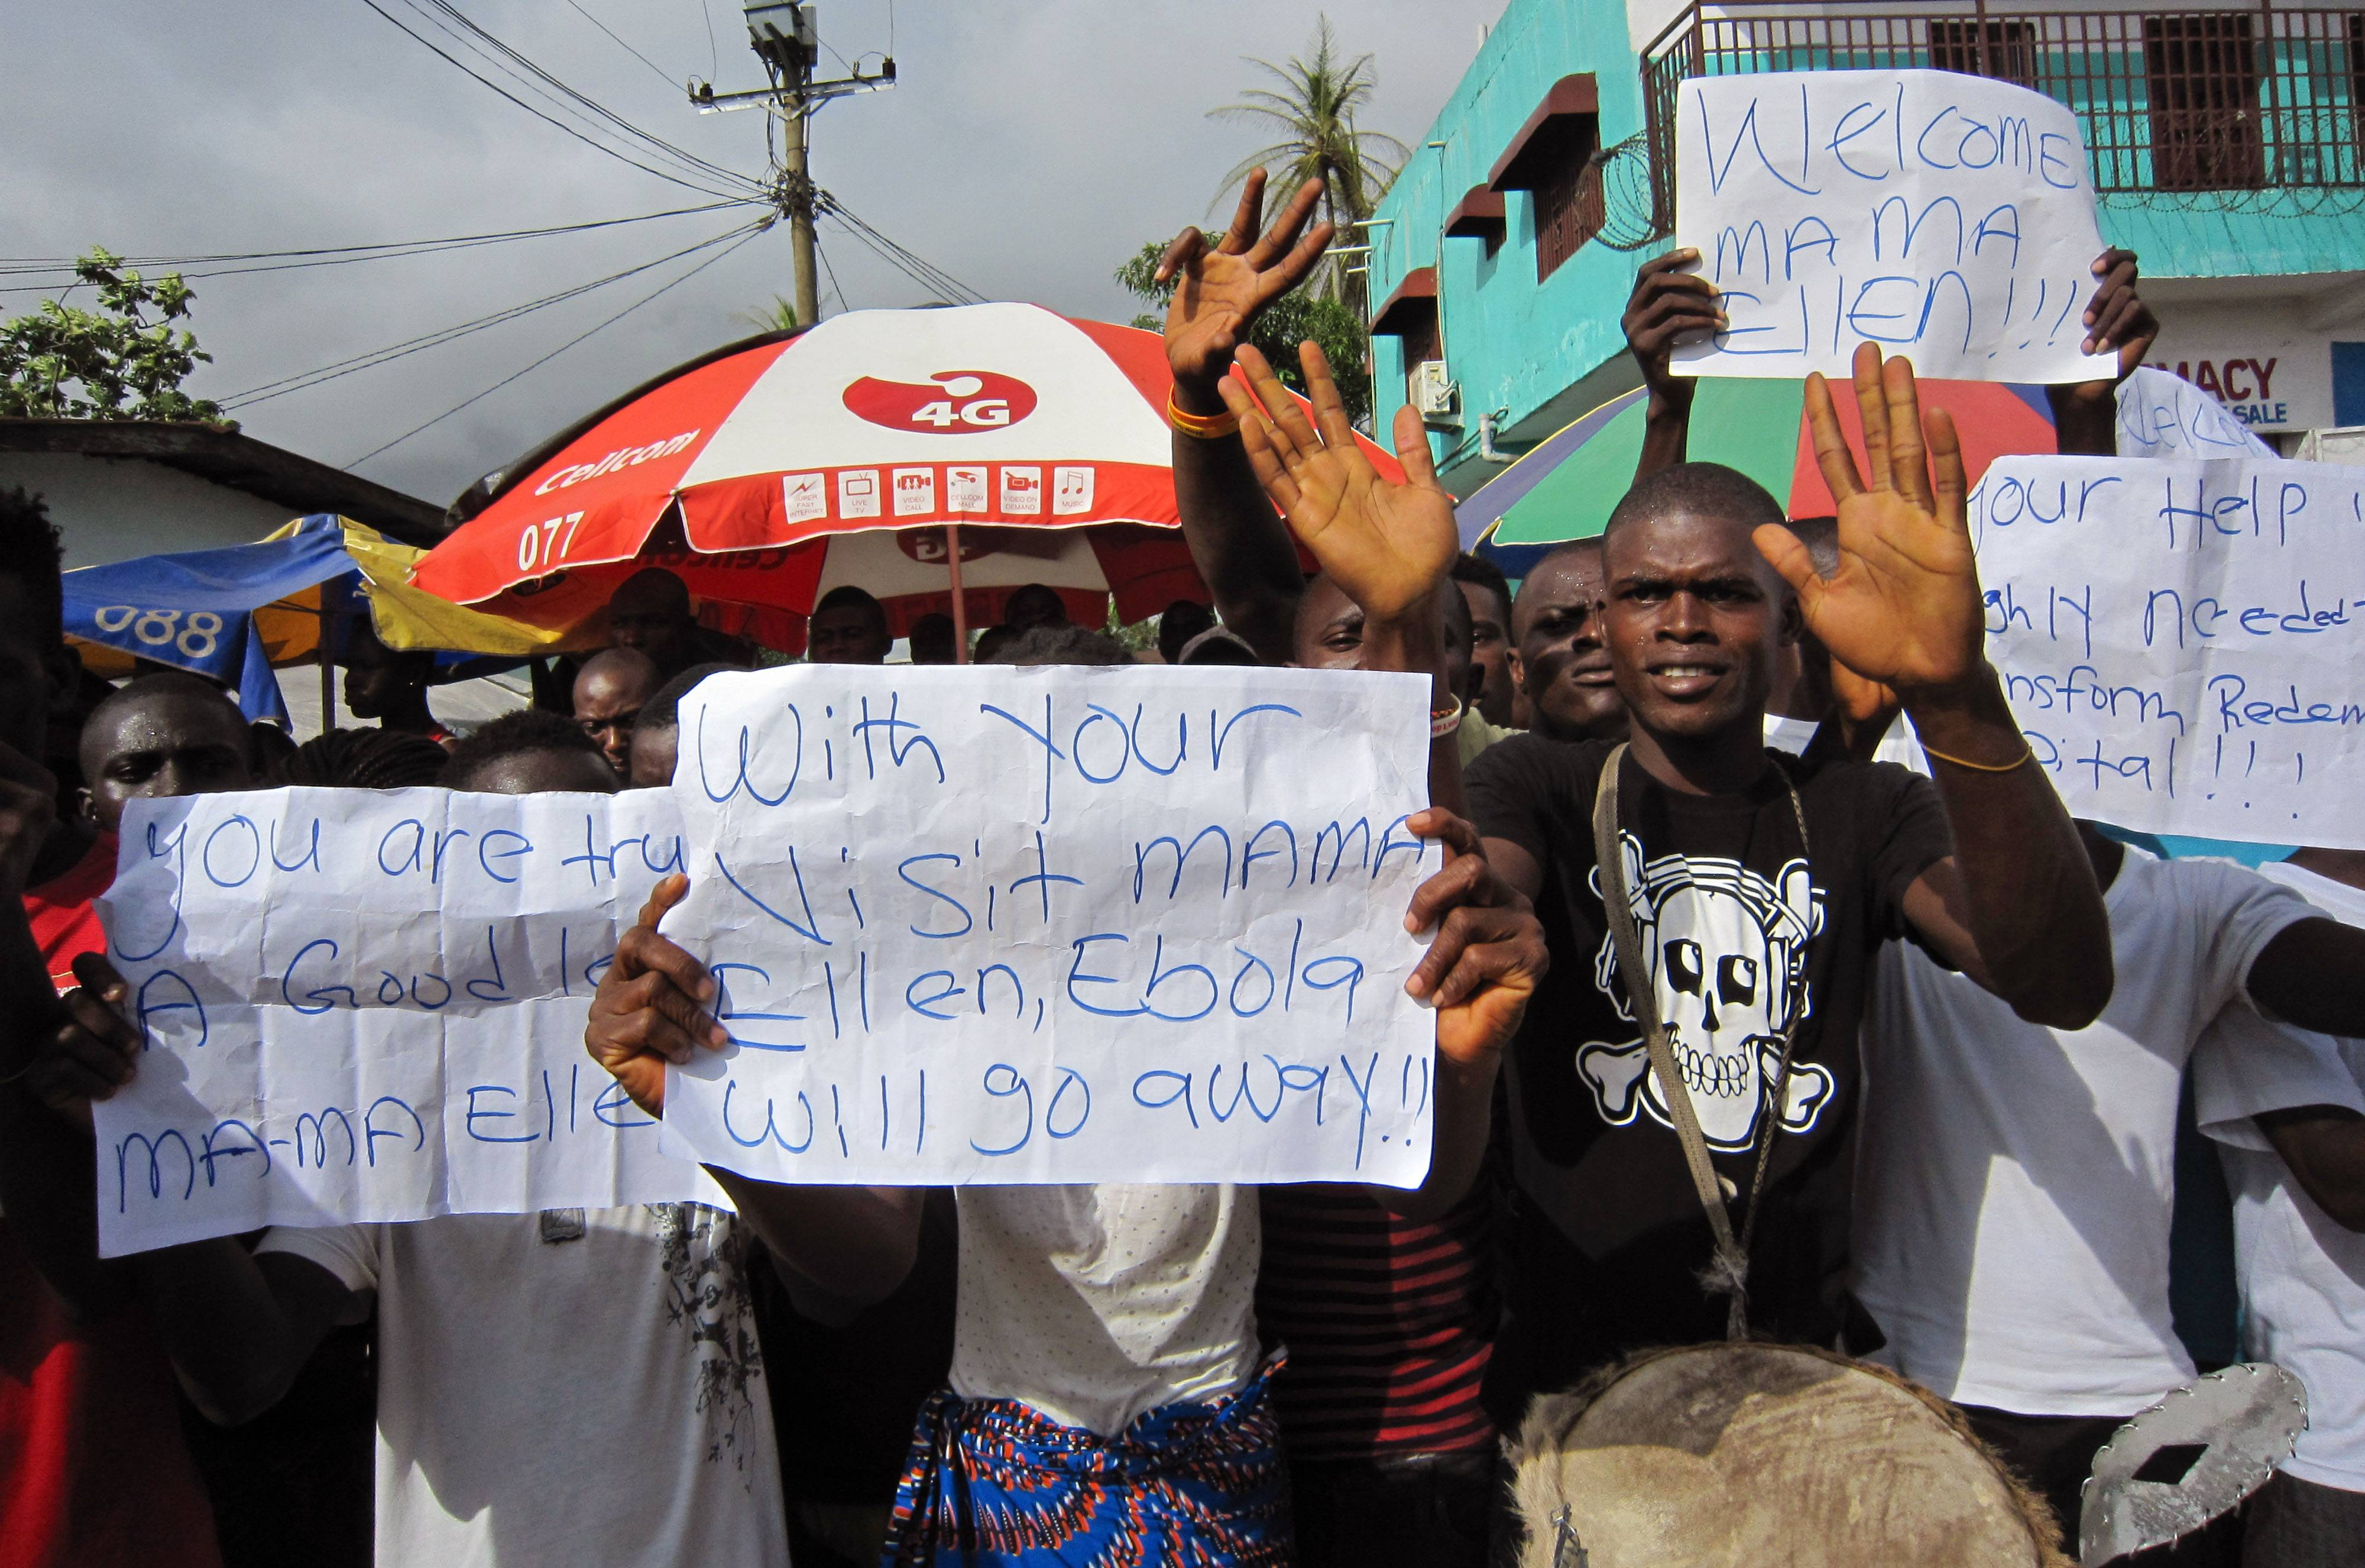 People protest outside a hospital as Liberia President Ellen Johnson Sirleaf visits the area Tuesday after Ebola deaths in Monrovia, Liberia.